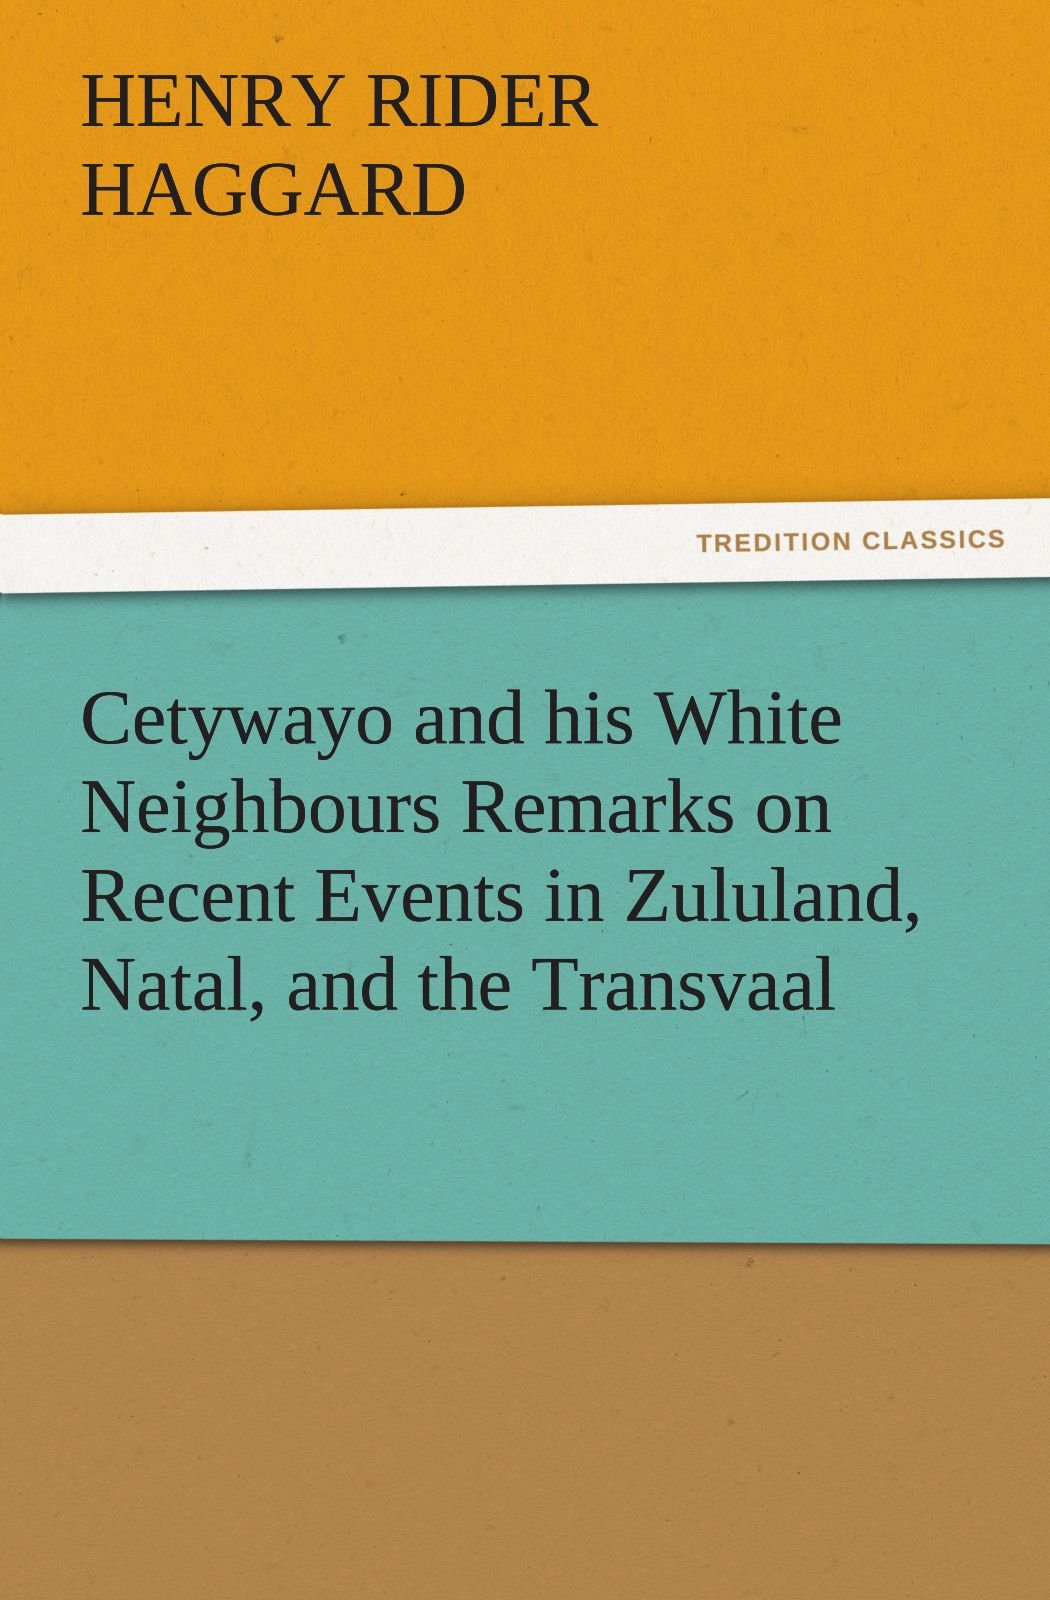 Cetywayo and his White Neighbours Remarks on Recent Events in Zululand, Natal, and the Transvaal (TREDITION CLASSICS) pdf epub